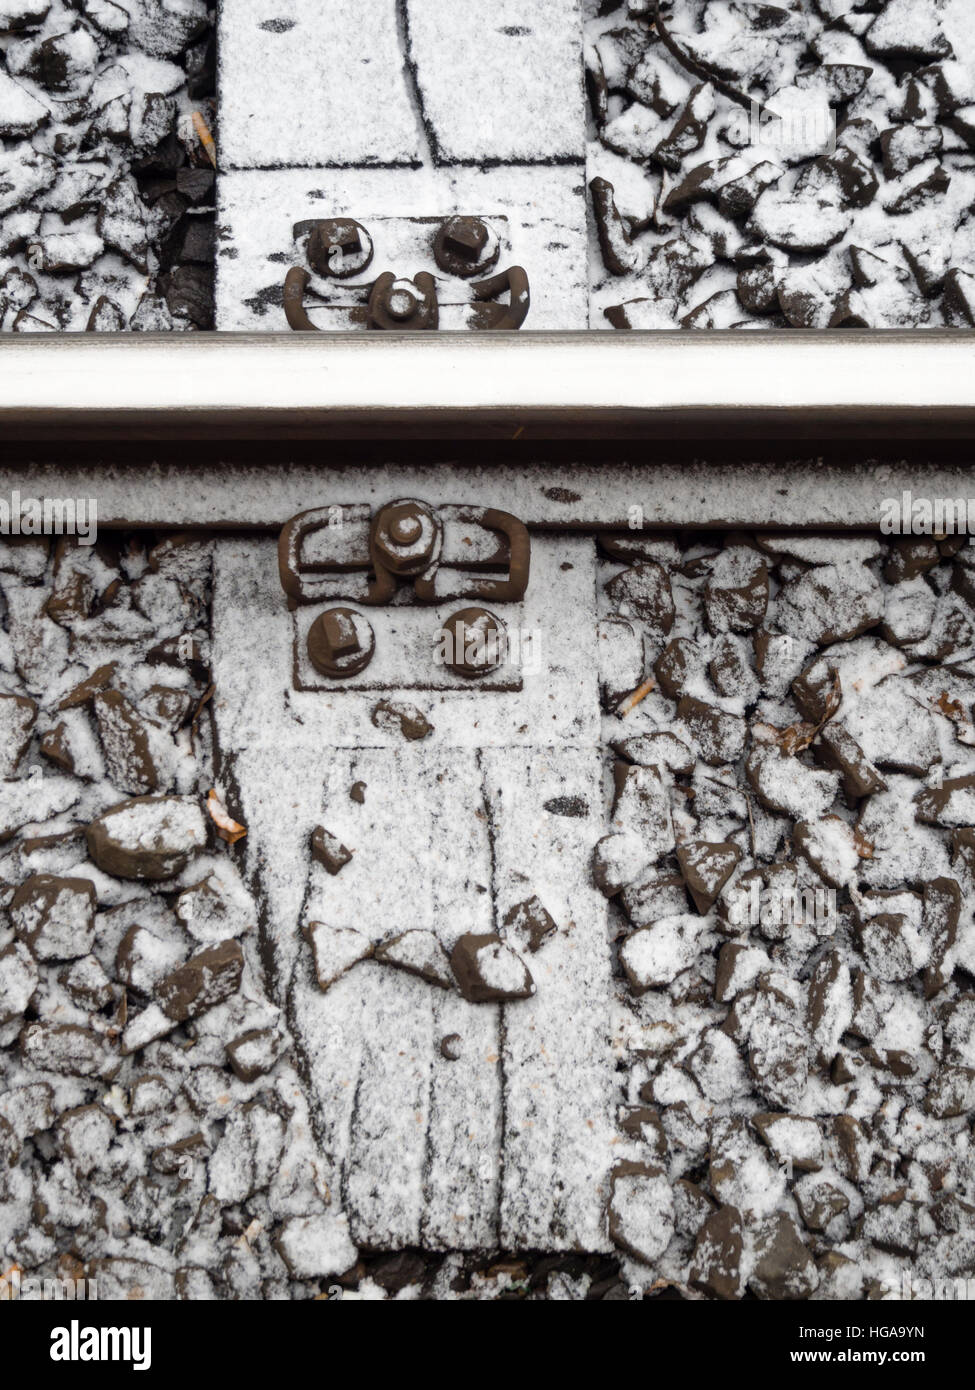 Close-up view from above onto snow covered railway tracks - Stock Image